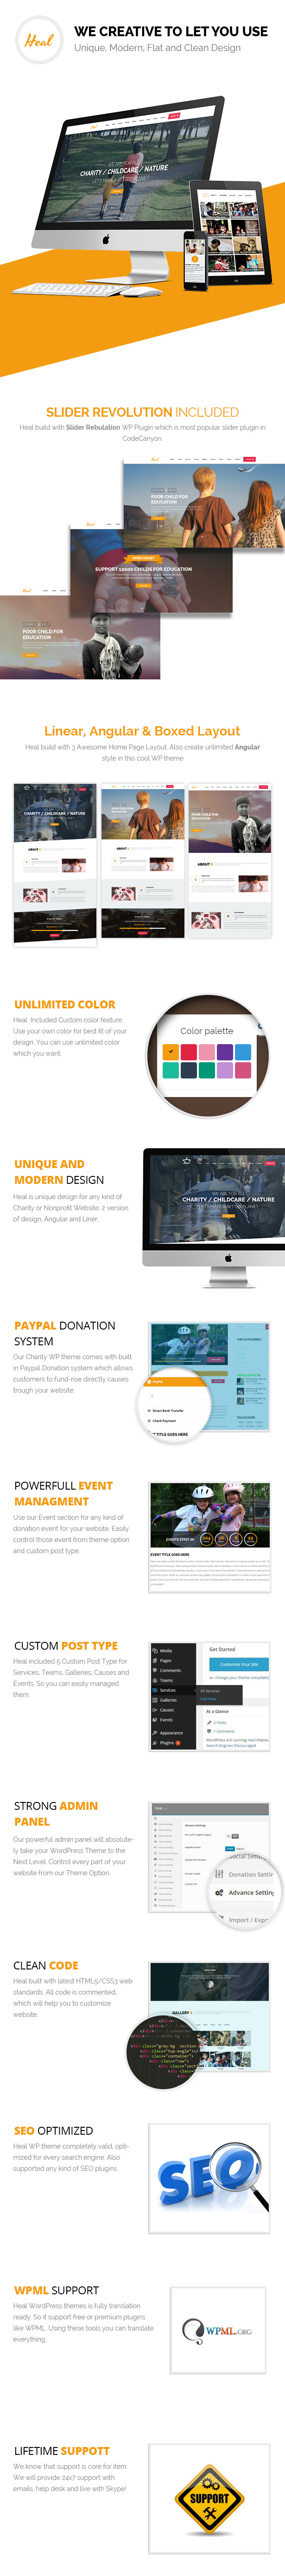 Main Features of Heal - Charity WordPress Theme